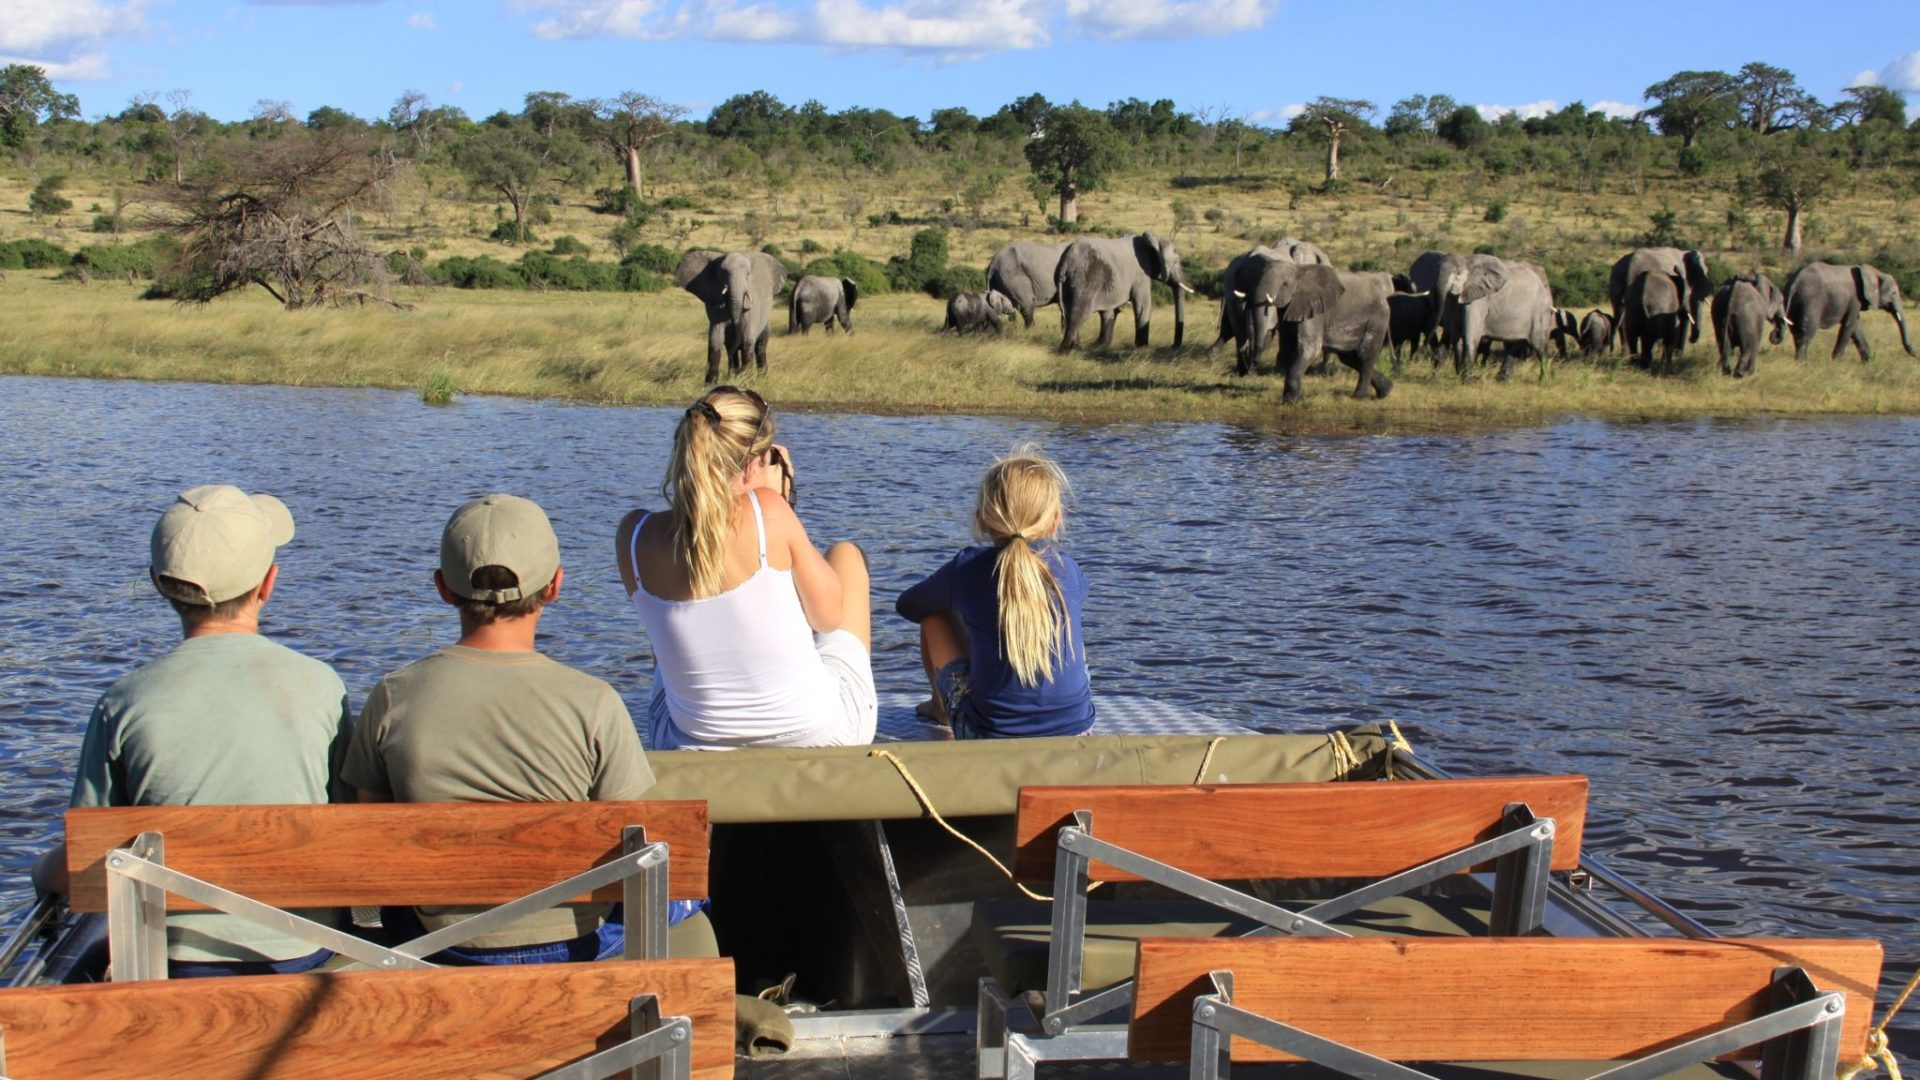 Chobe River Camp elephant viewing